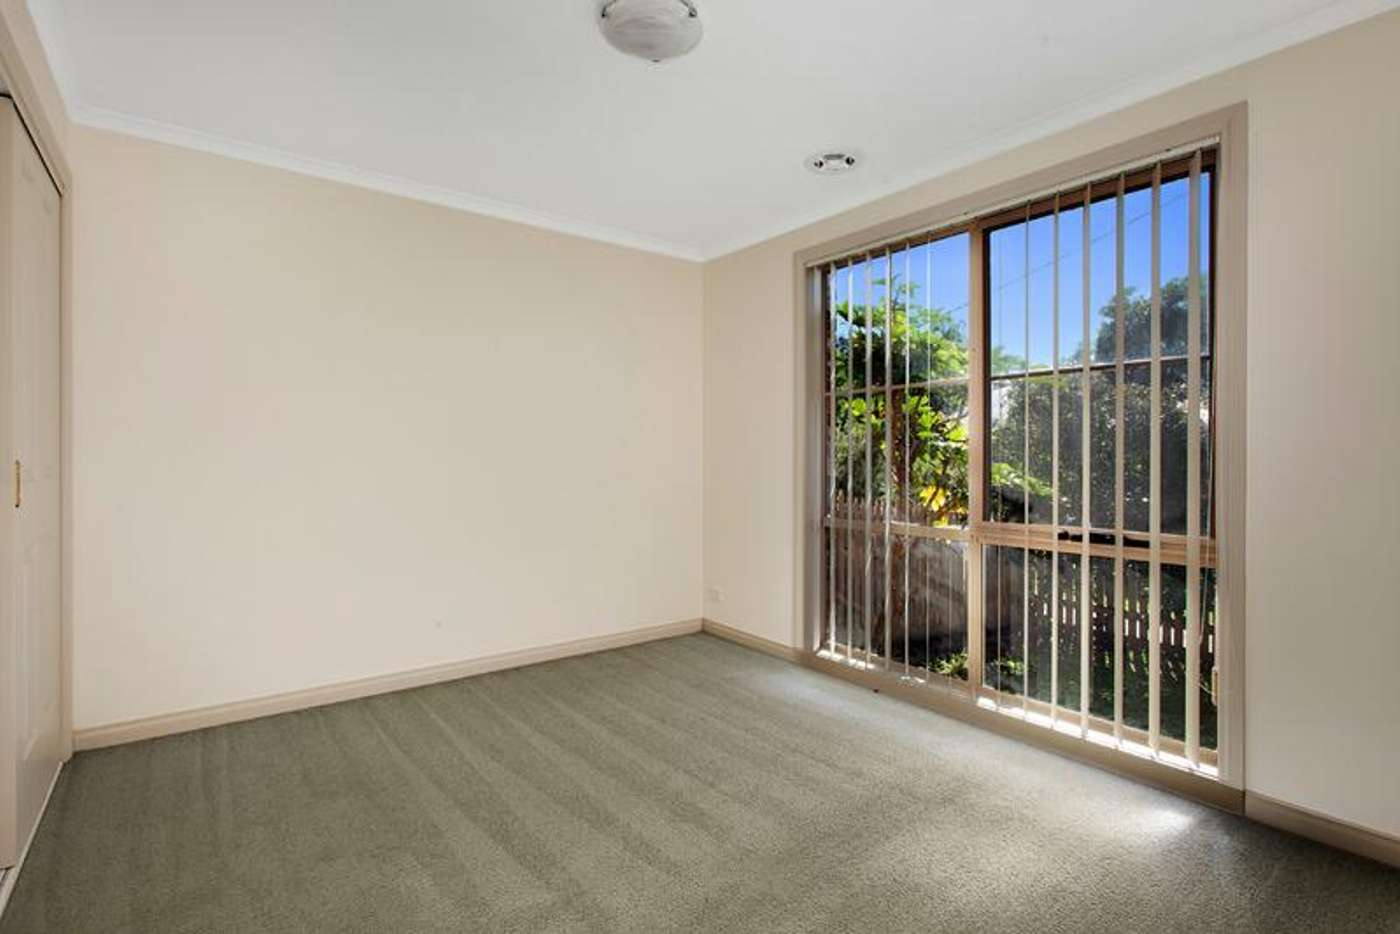 Sixth view of Homely house listing, 15 Merther Road, Ivanhoe VIC 3079